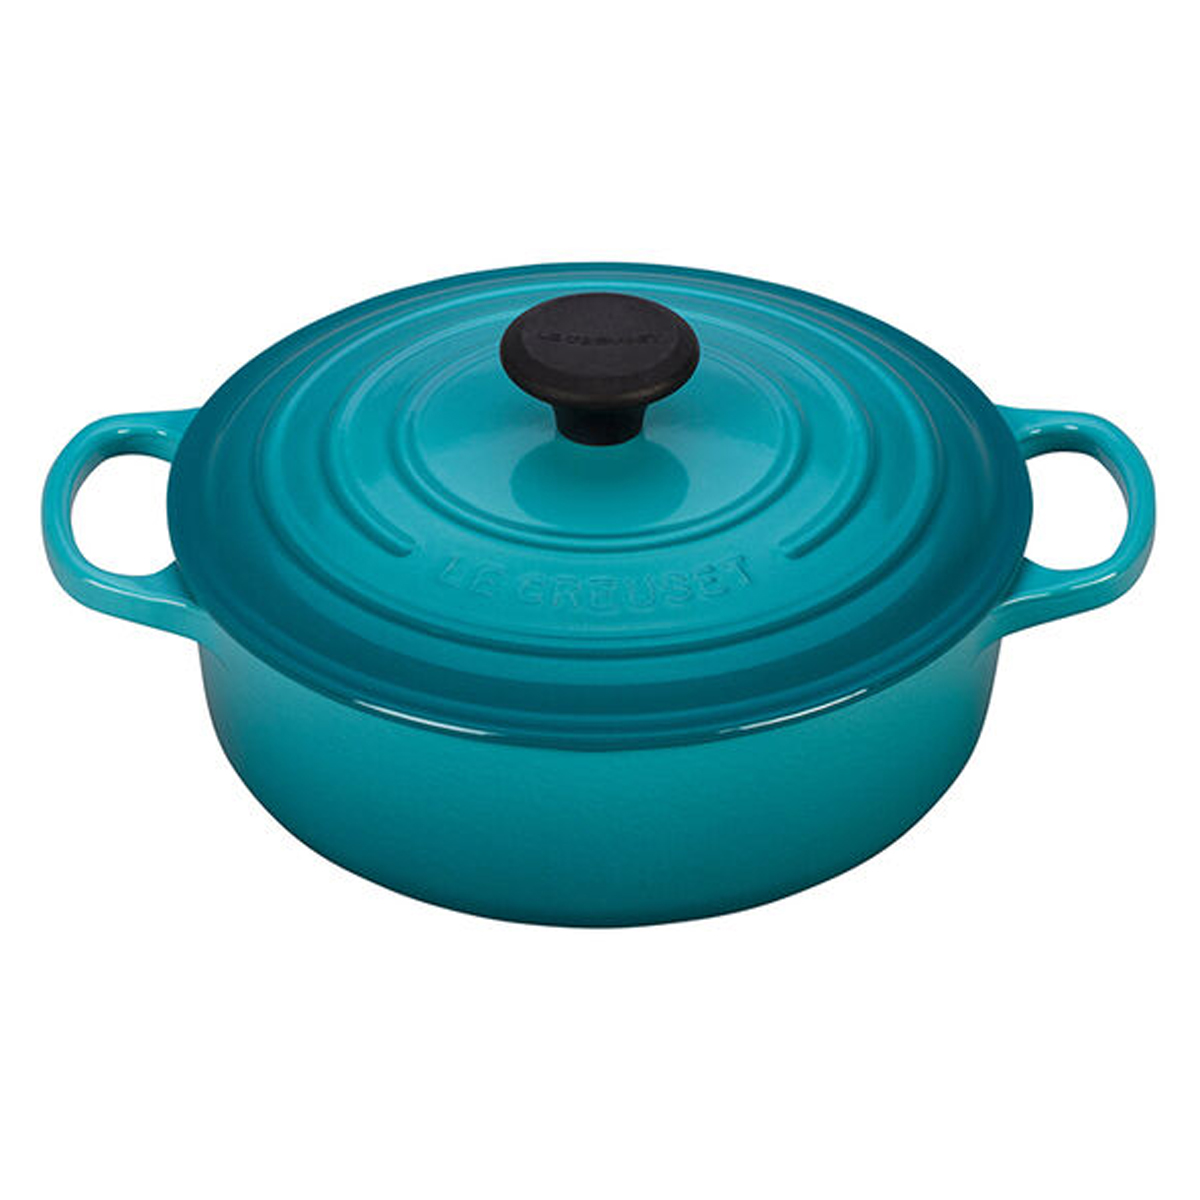 Le Creuset round wide oven